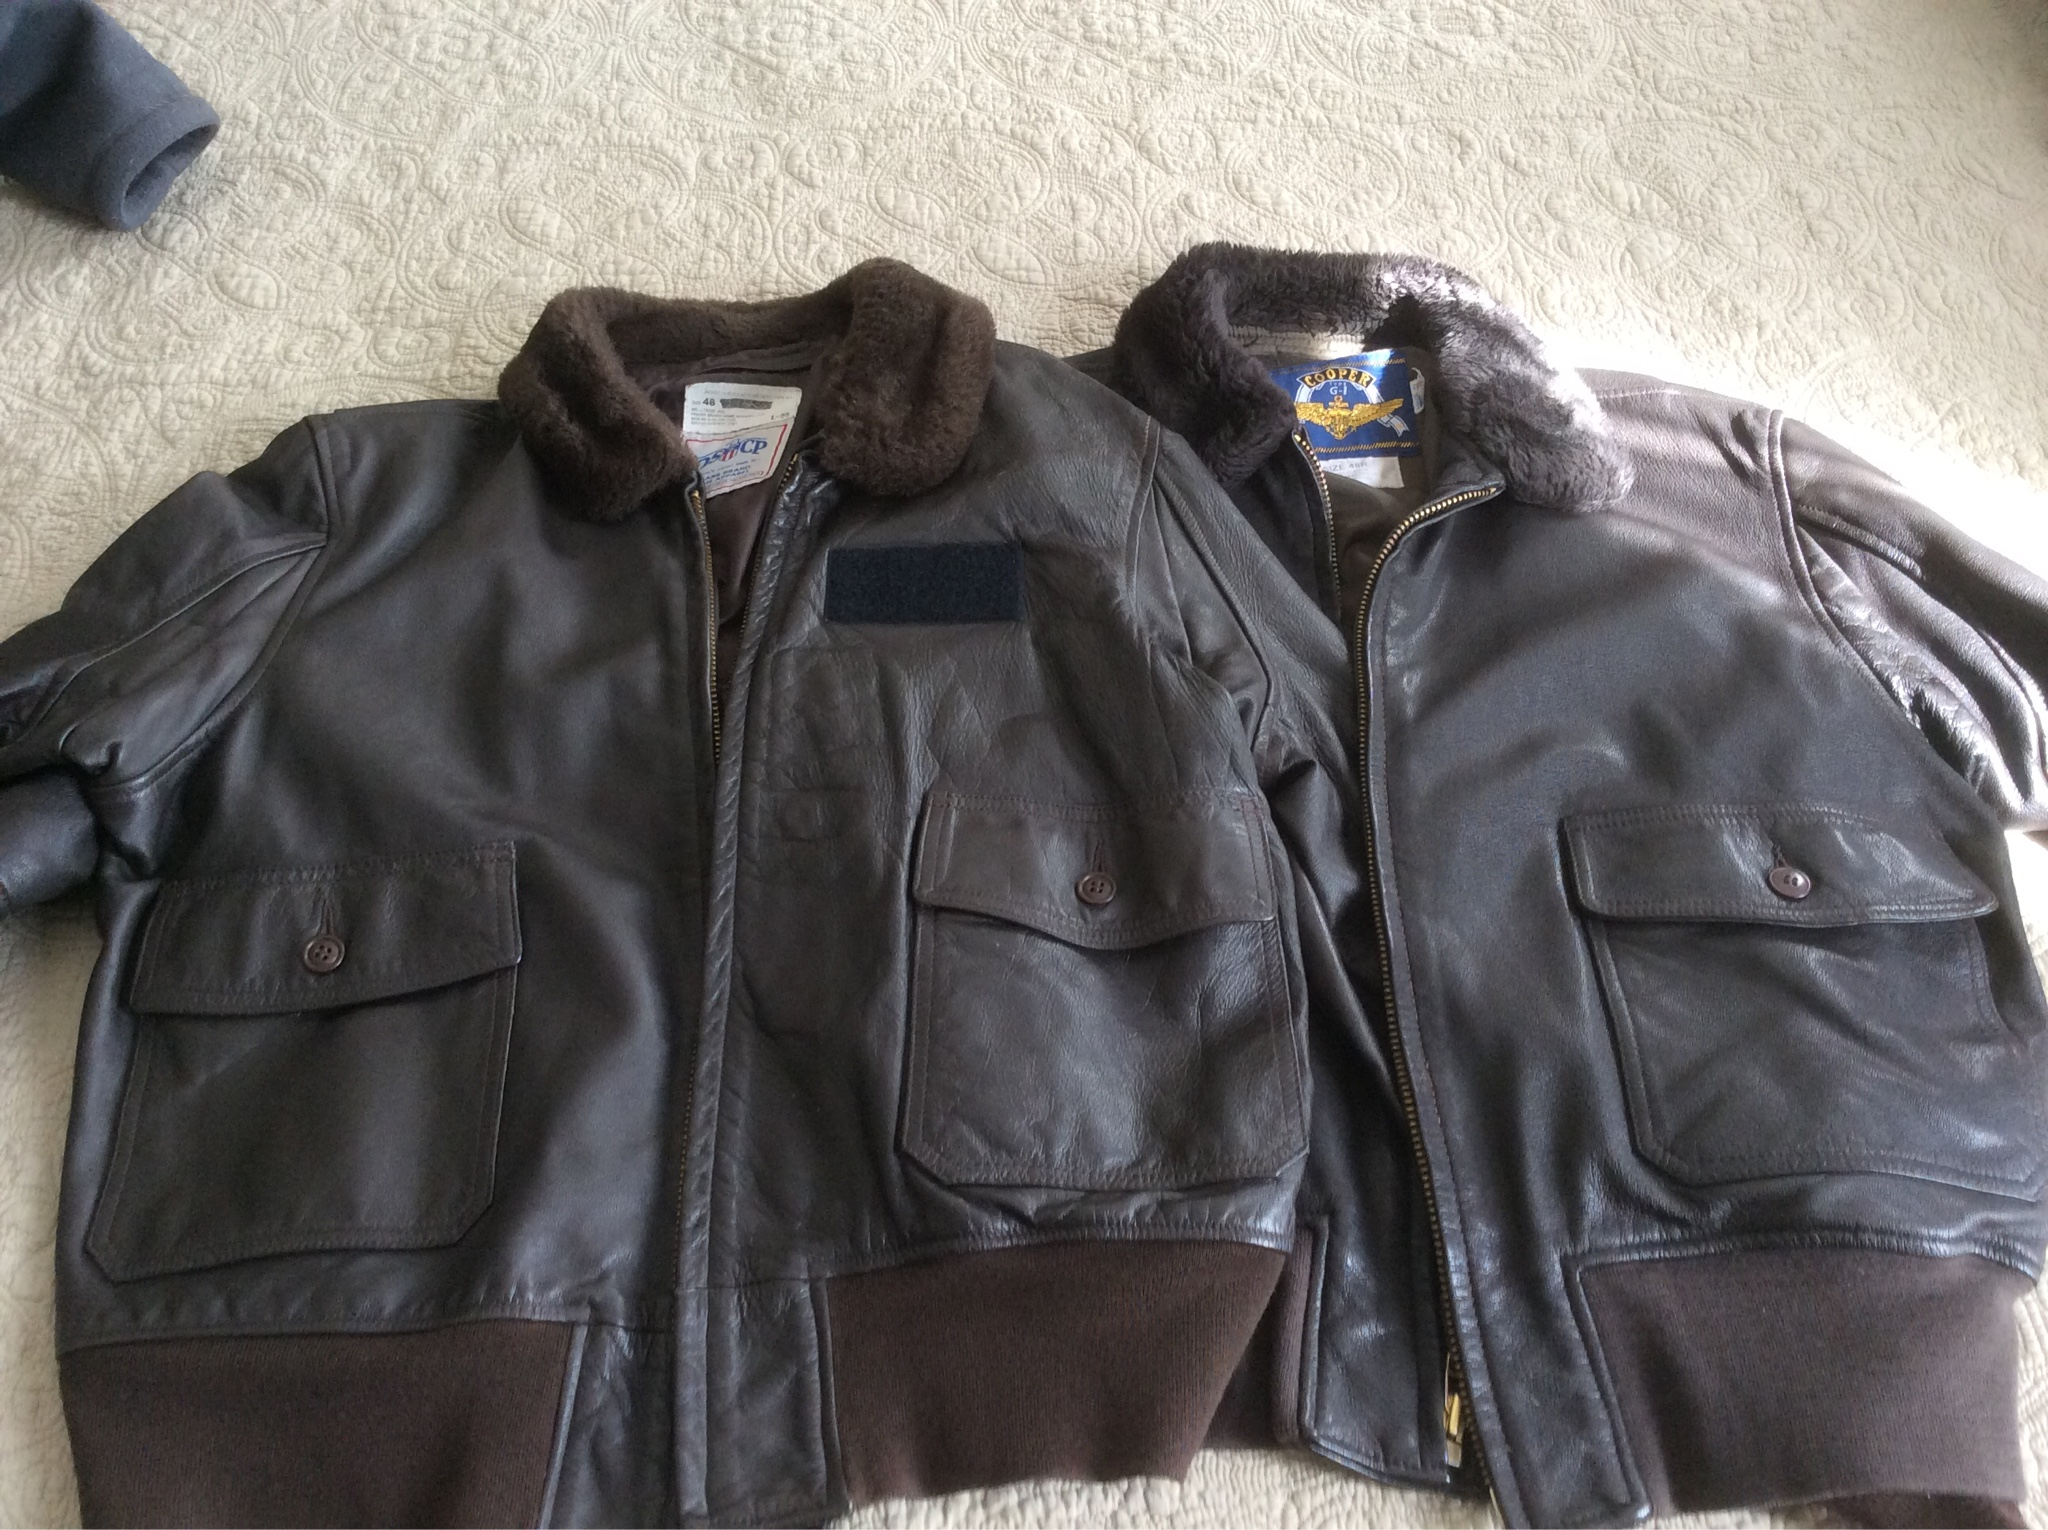 Excelled Sheepskin and Leather Company G-1 Jackets | The Fedora Lounge